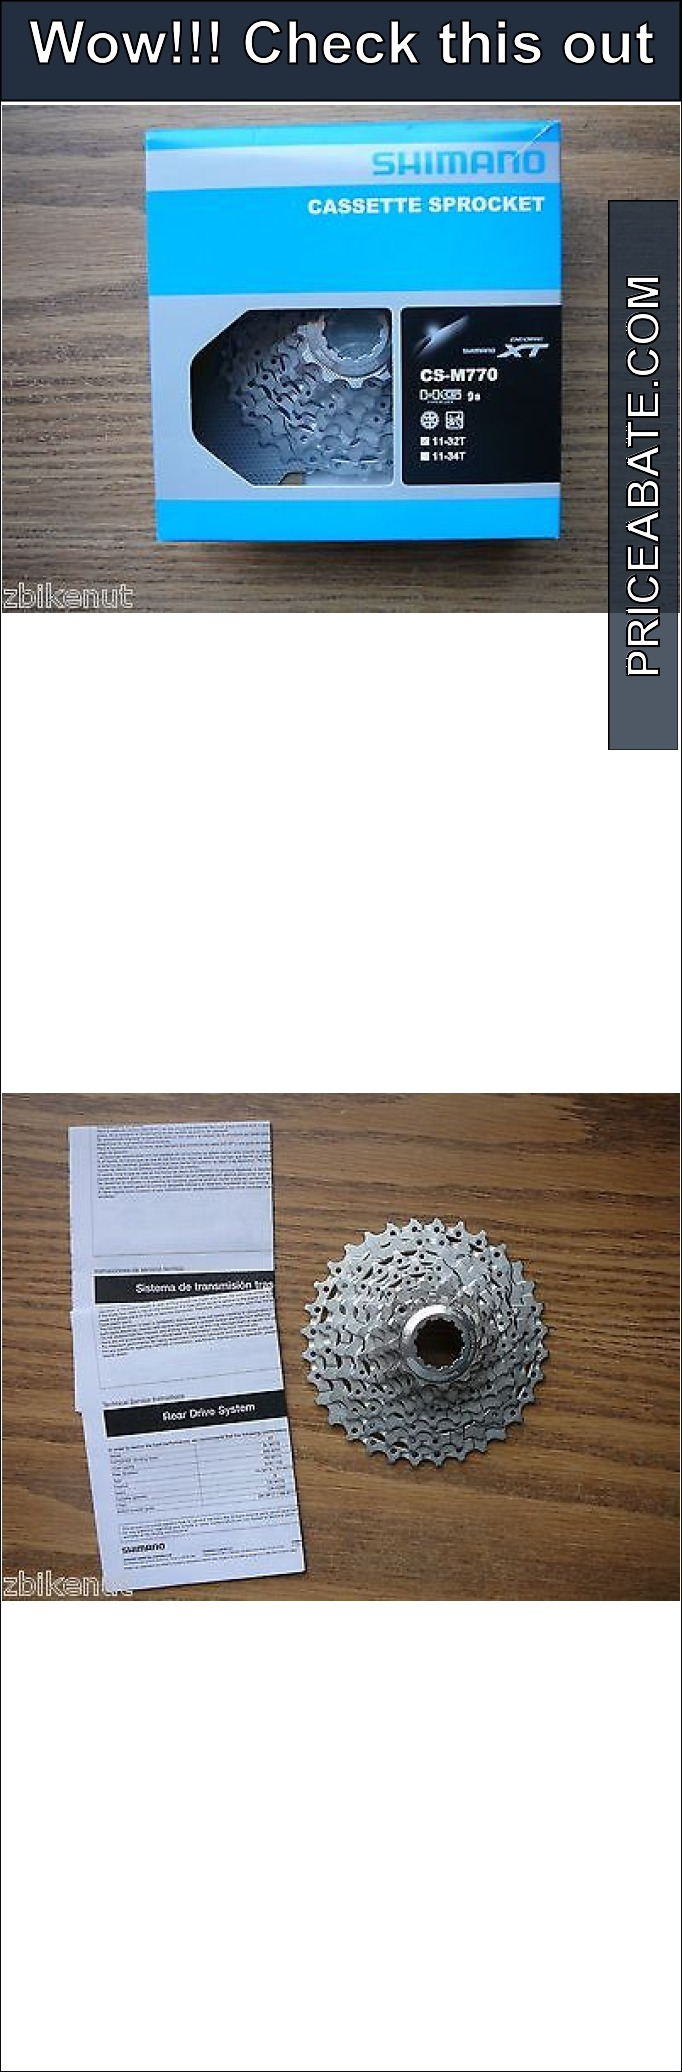 bicycle-parts: Shimano Deore XT CS-M770 Mountain Bike Cassette 11-32 Tooth 9 Speed New MTB #Bicycle - Shimano Deore XT CS-M770 Mountain Bike Cassette 11-32 Tooth 9 Speed New MTB...